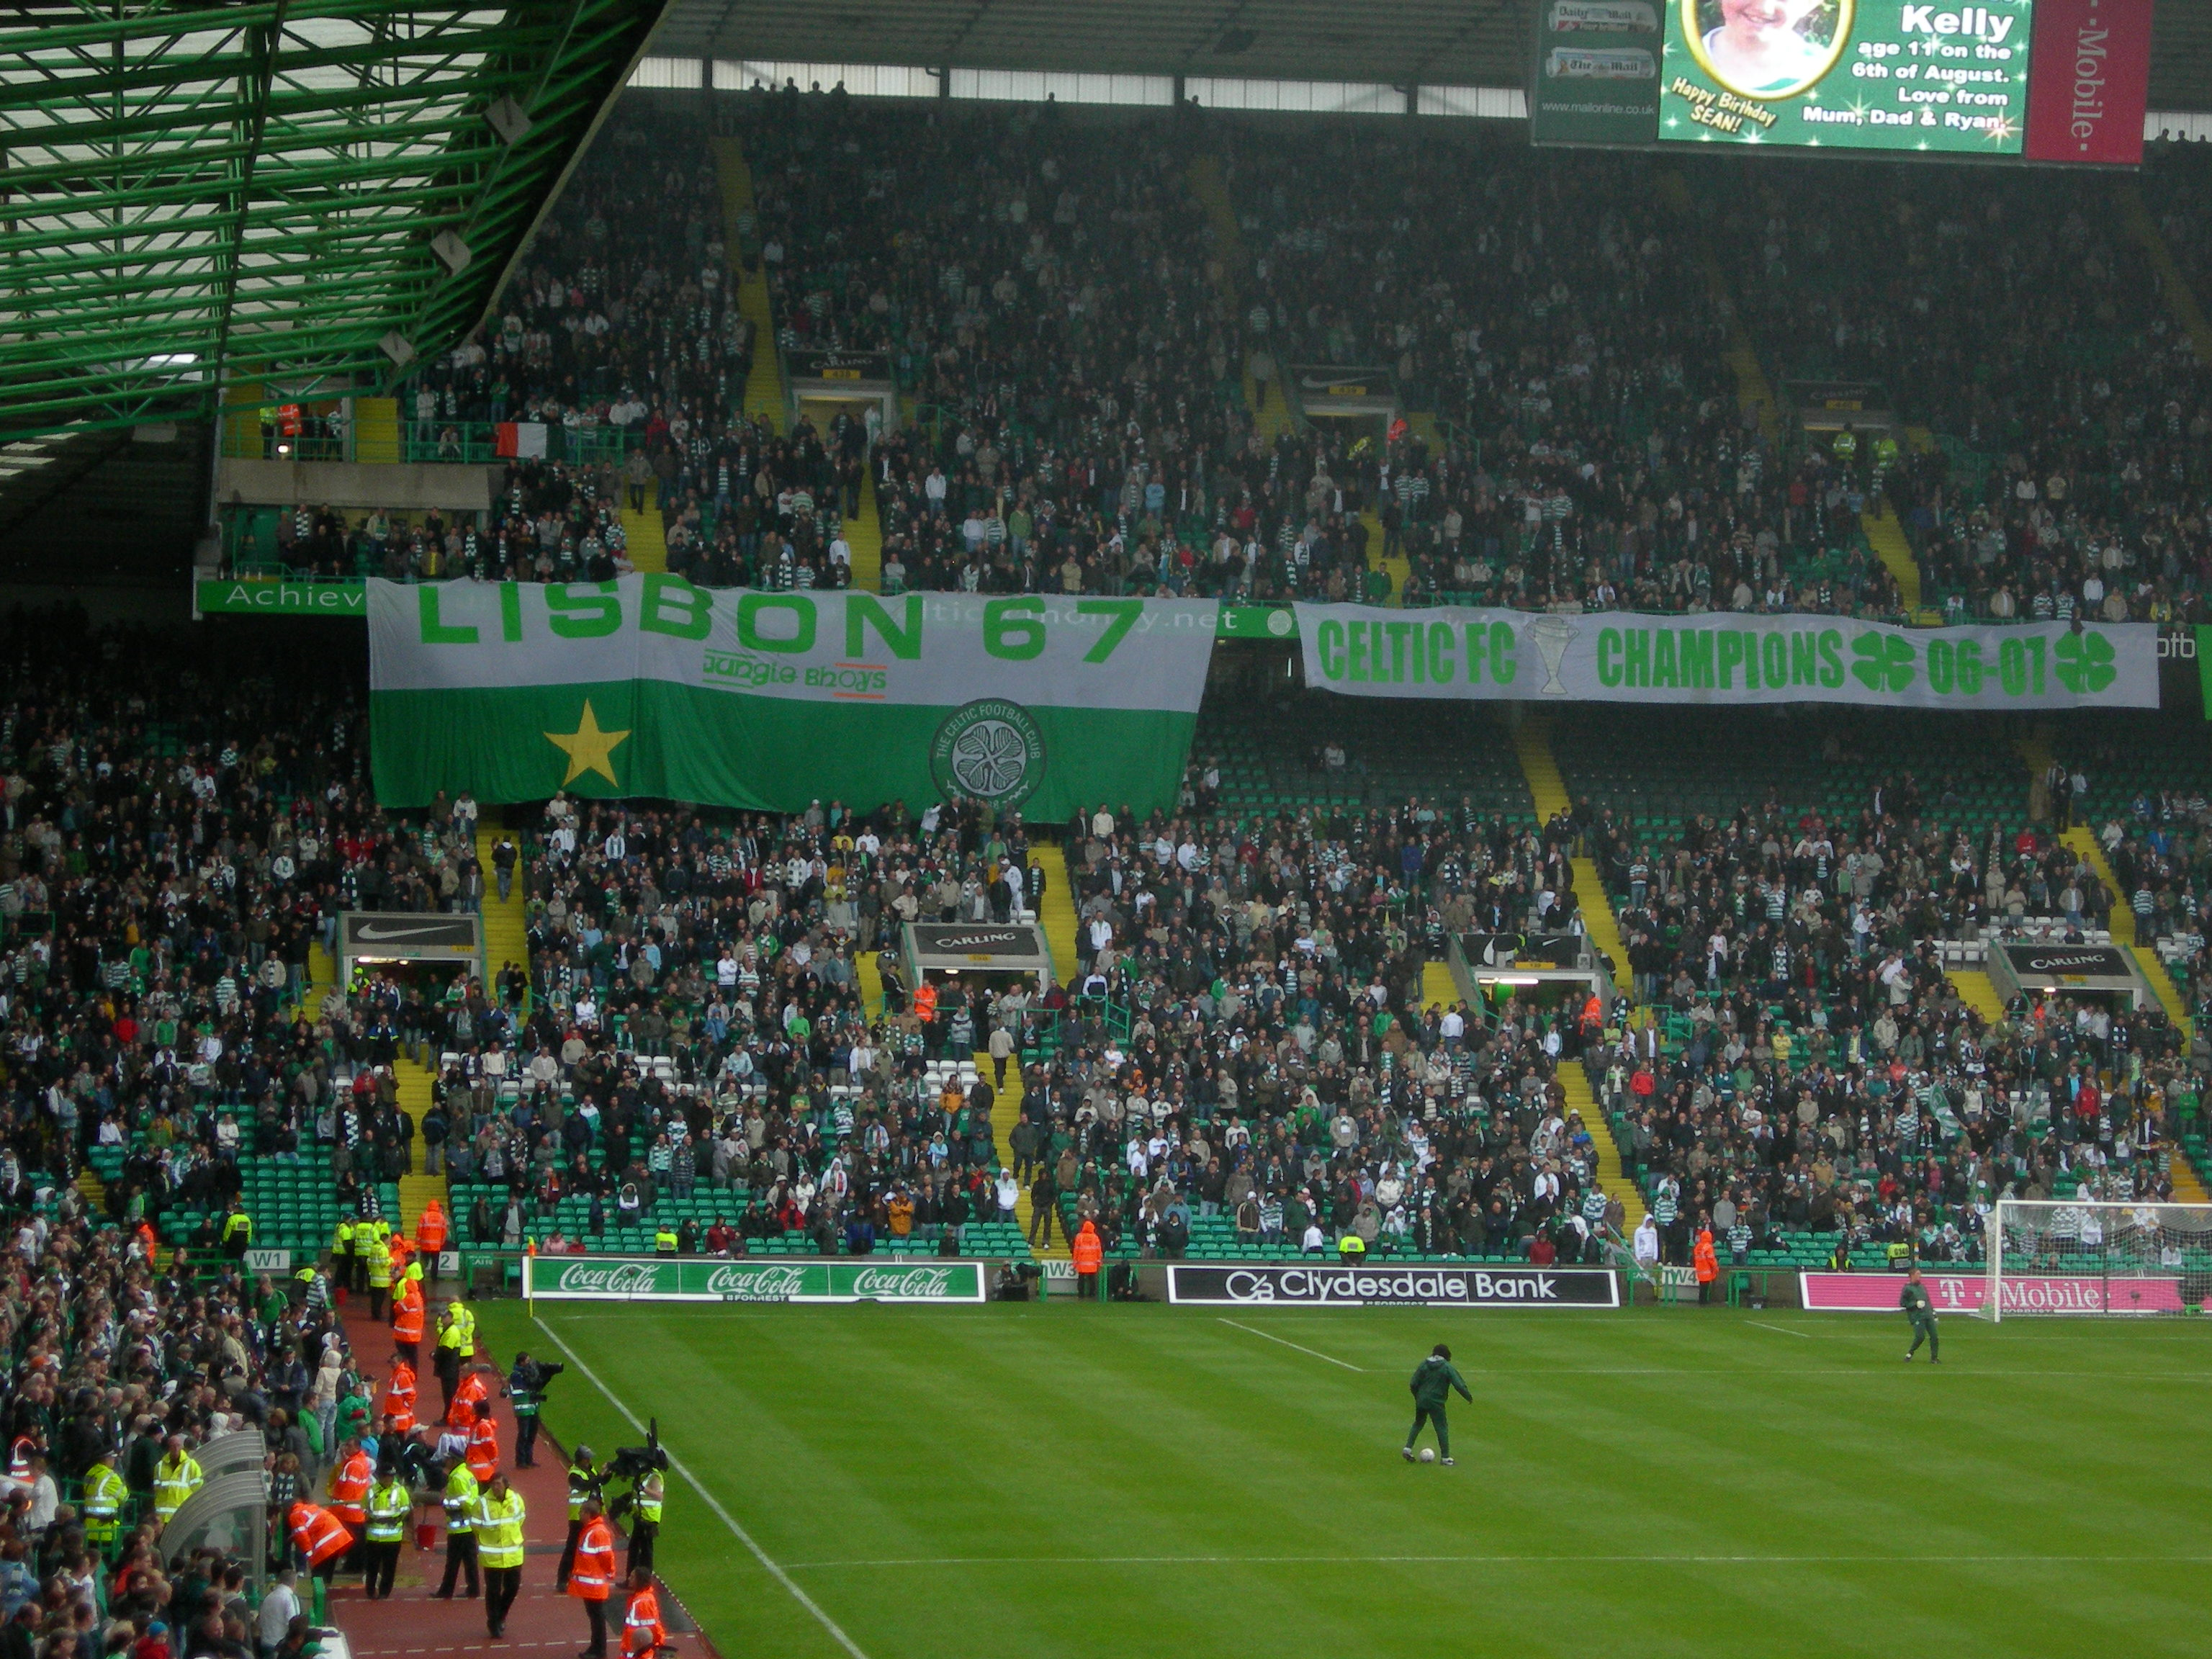 Celtic FC Supporters